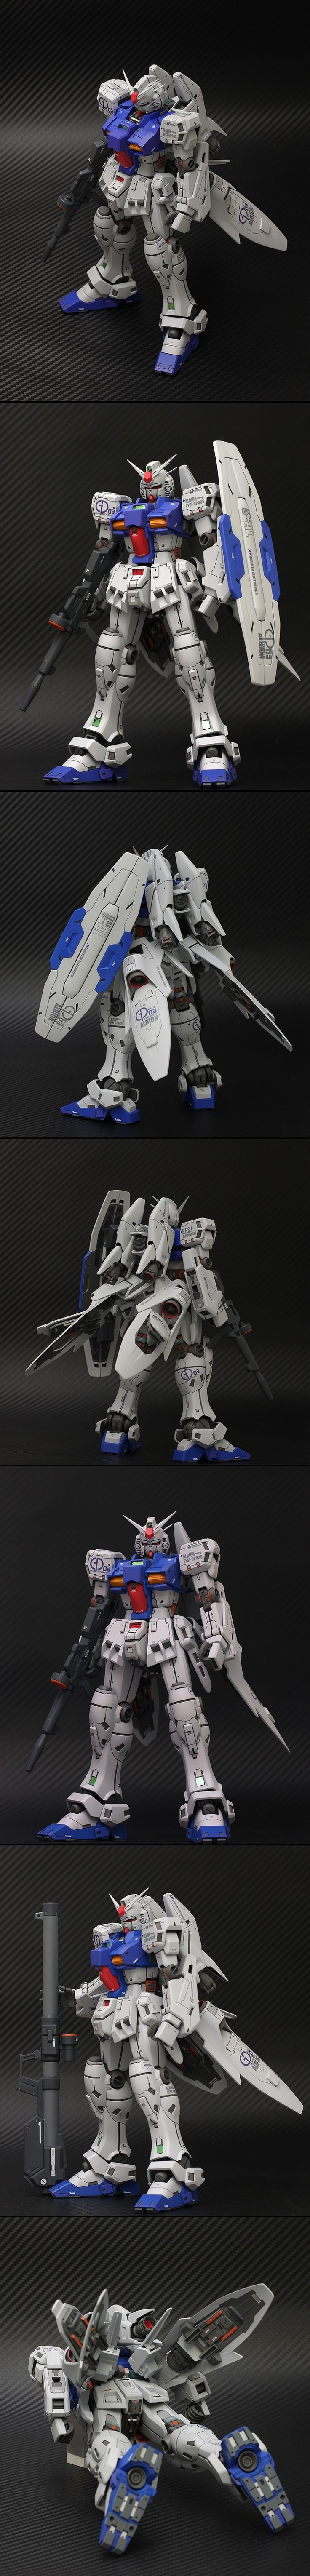 """1/100 RX-78GP03S Gundam """"Dendrobium Stamen"""" (aka Stamen GP03S): Amazing Work by ttl2541 Full Photoreview [WIP too] Wallpaper Size Images"""